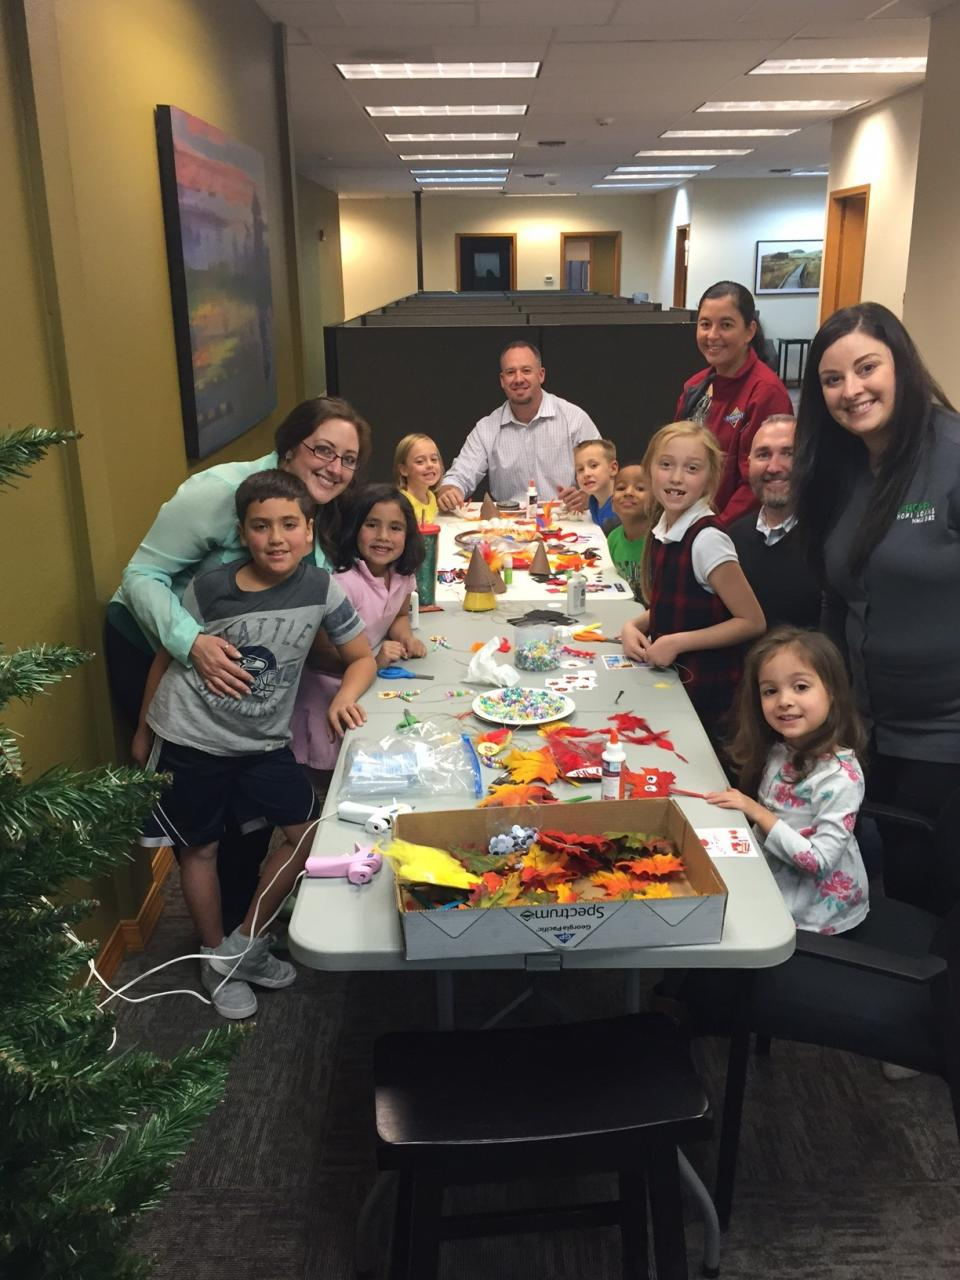 Craft Night at our Kennewick Branch